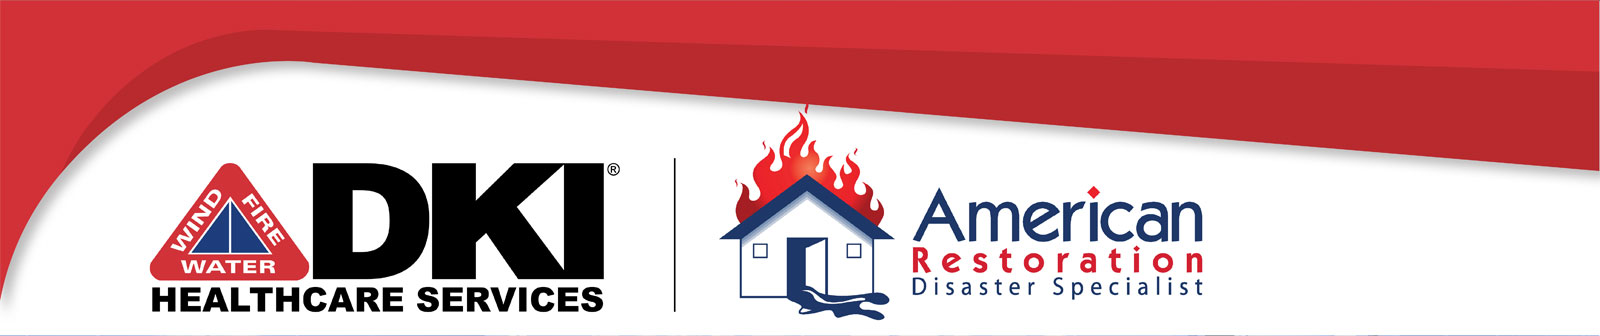 American Restoration and DKI Healthcare Services Logo